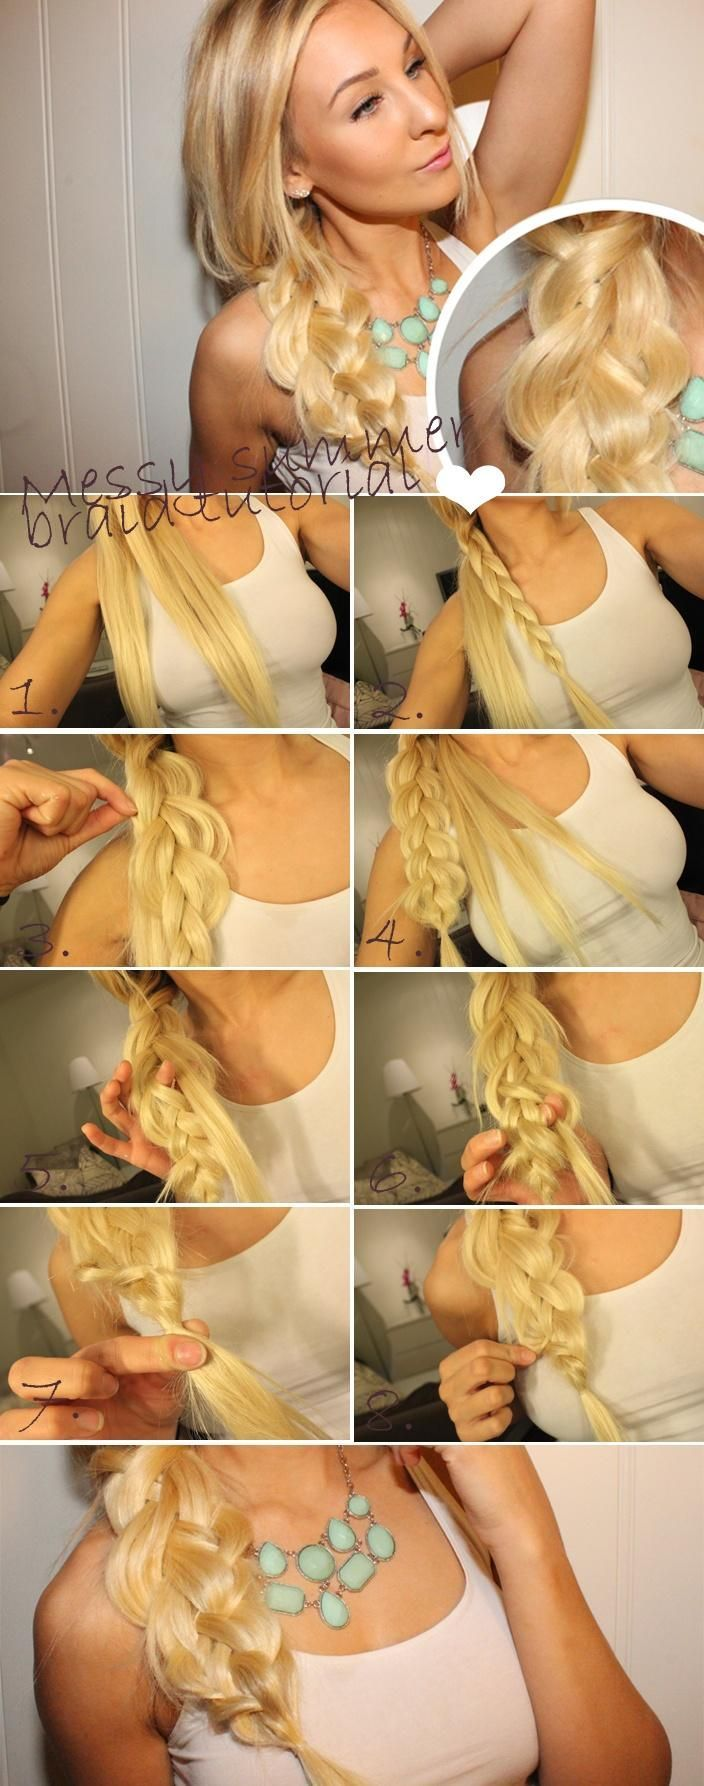 Messy Summer Braid Tutorial - Hairstyles and Beauty Tips